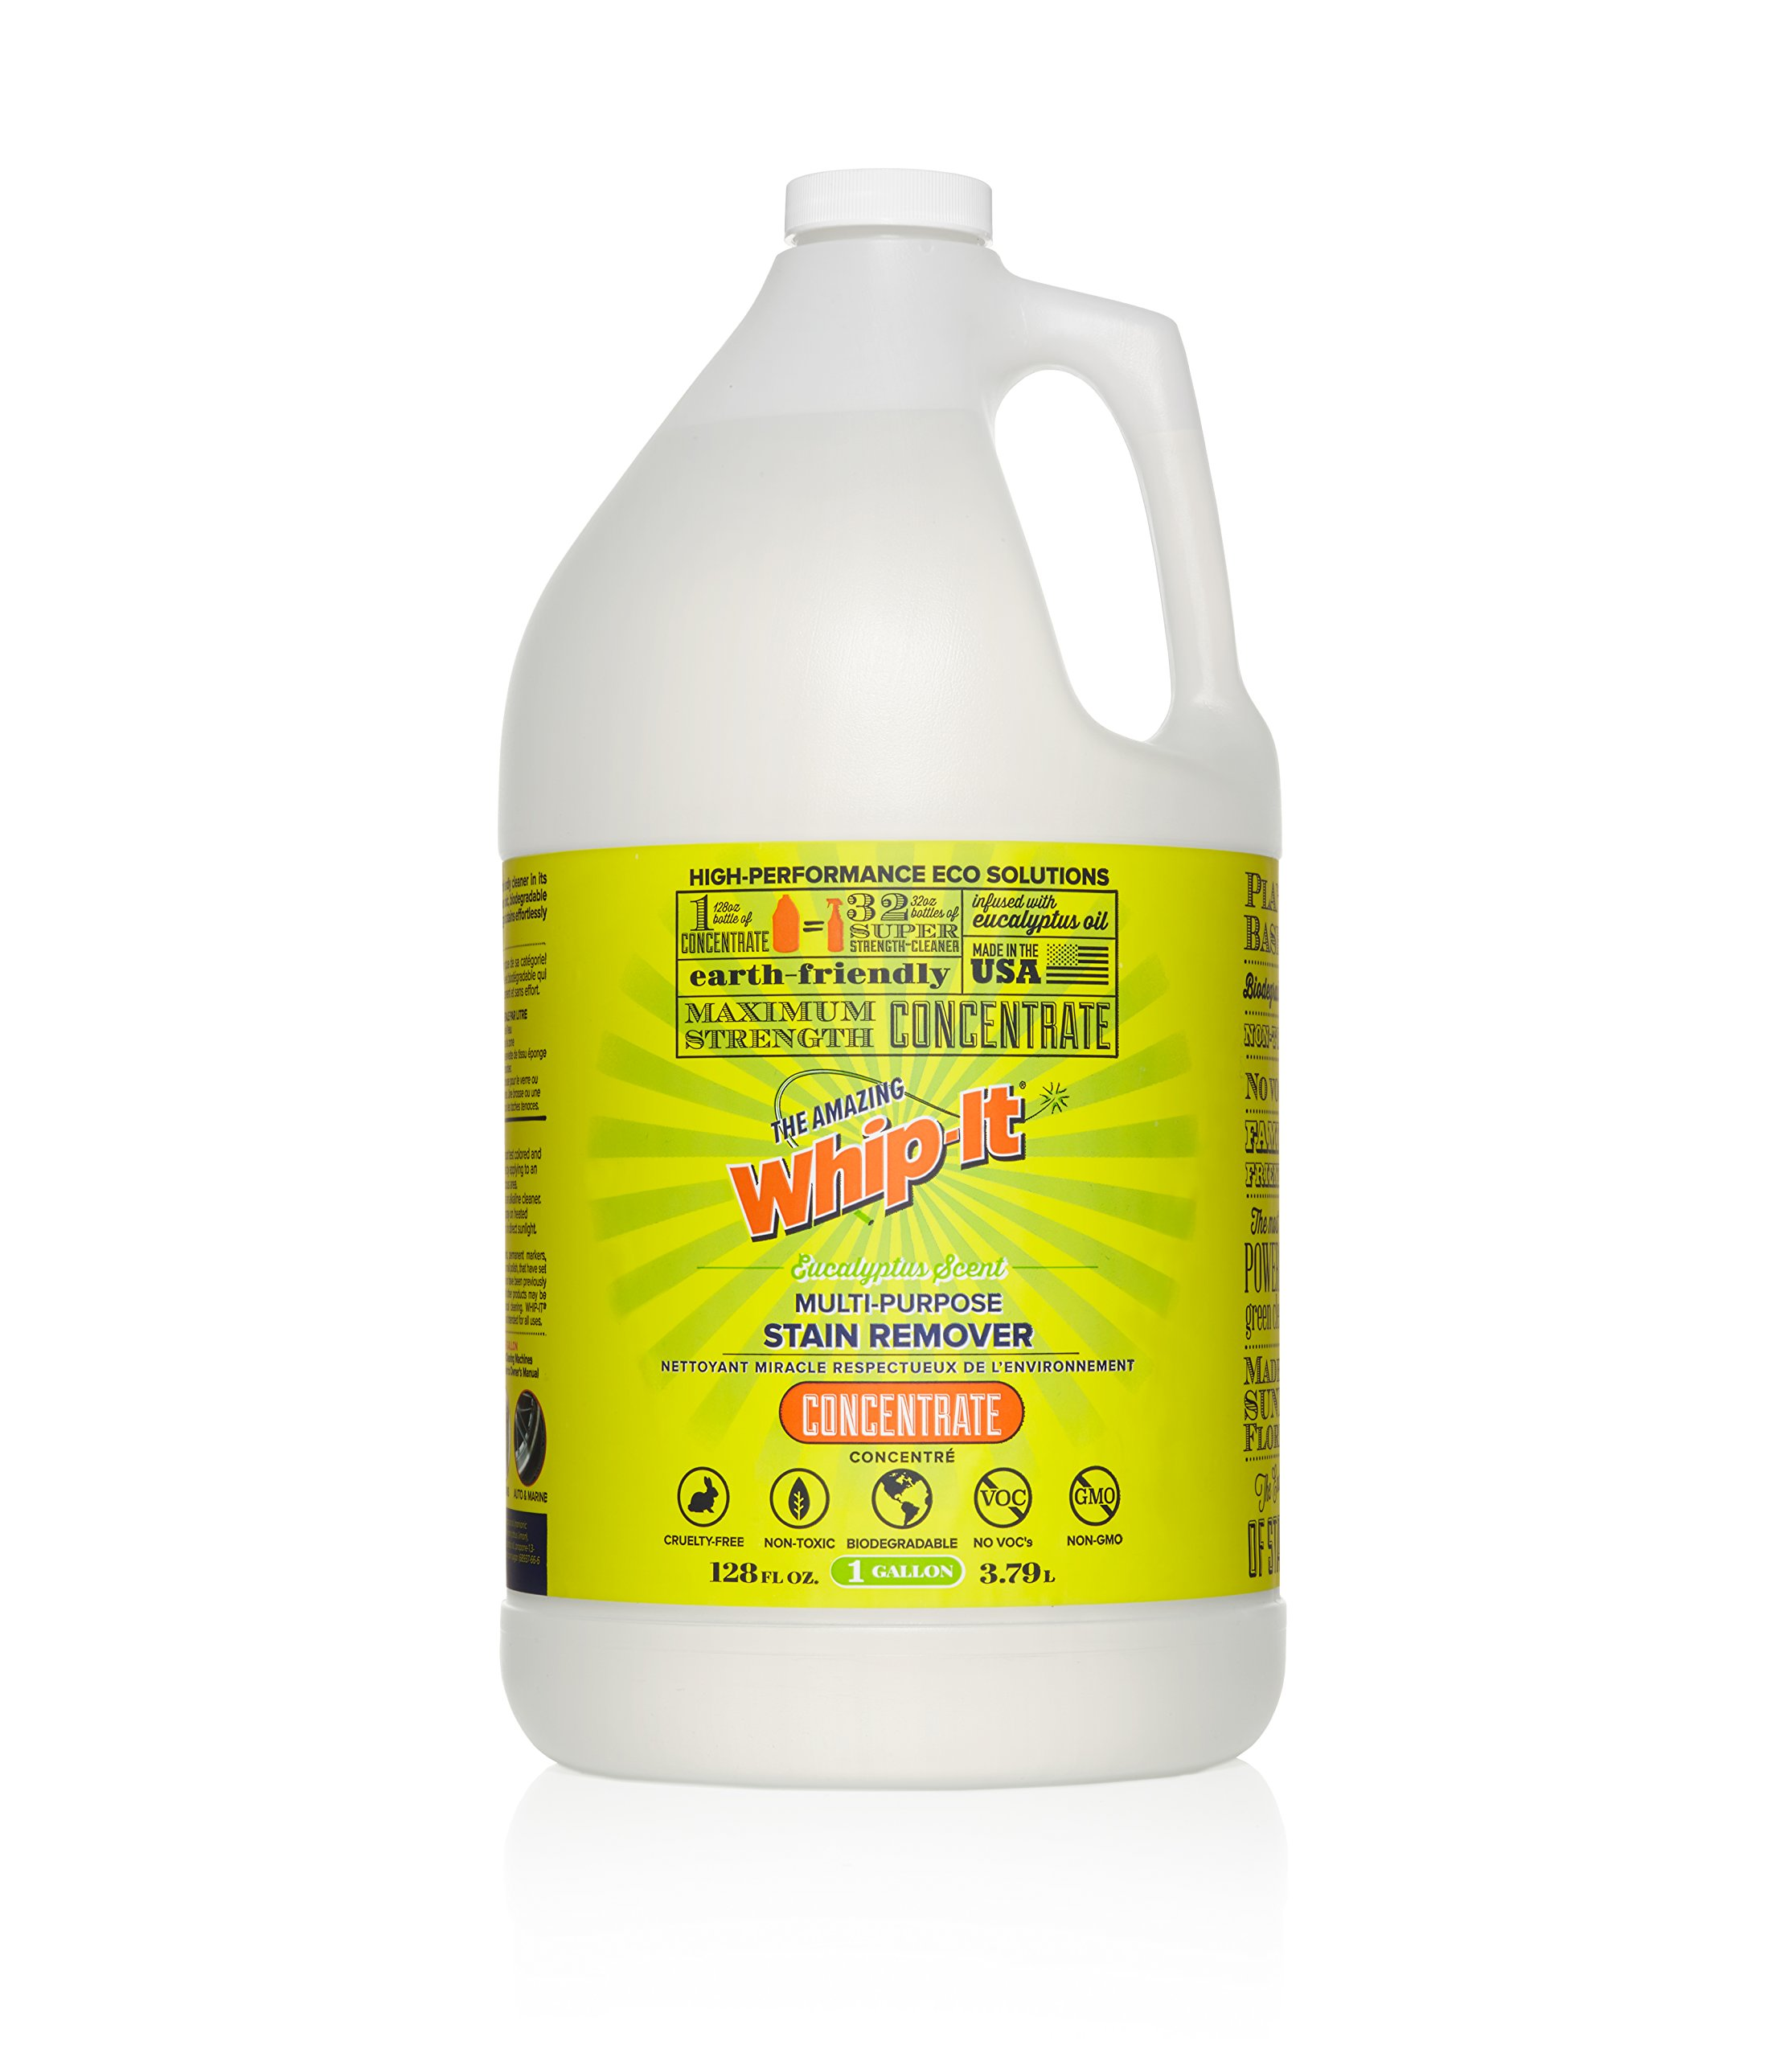 Whip-It Multi-Purpose Stain Remover - 128oz Concentrate - Plant-Based with All 6 Enzymes - All Natural - Made in USA